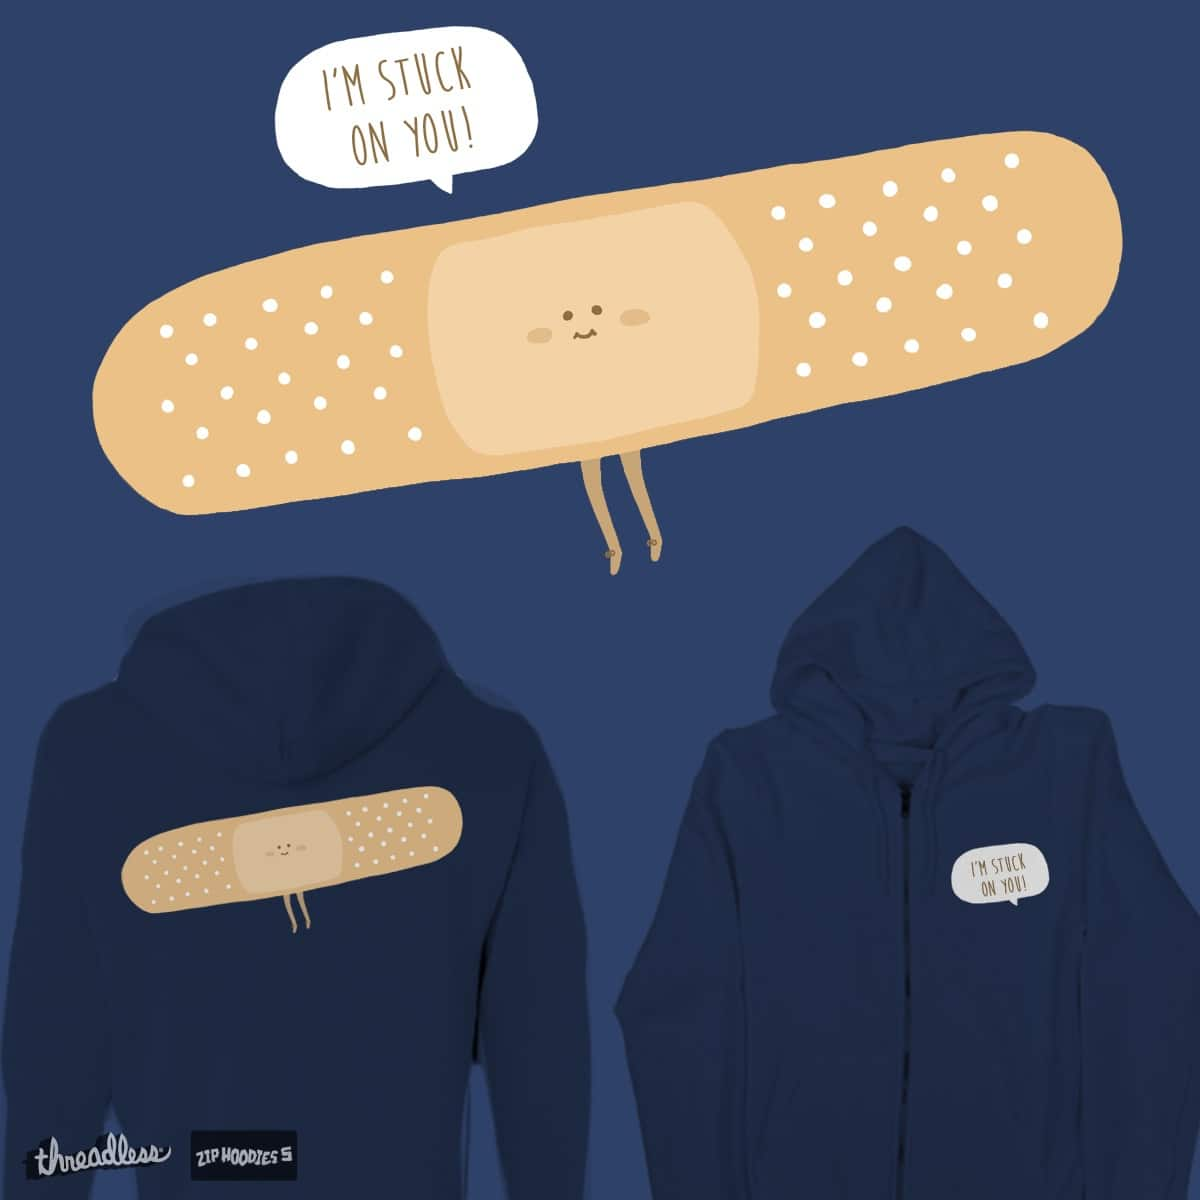 I'm stuck on you! by Ri7Li on Threadless